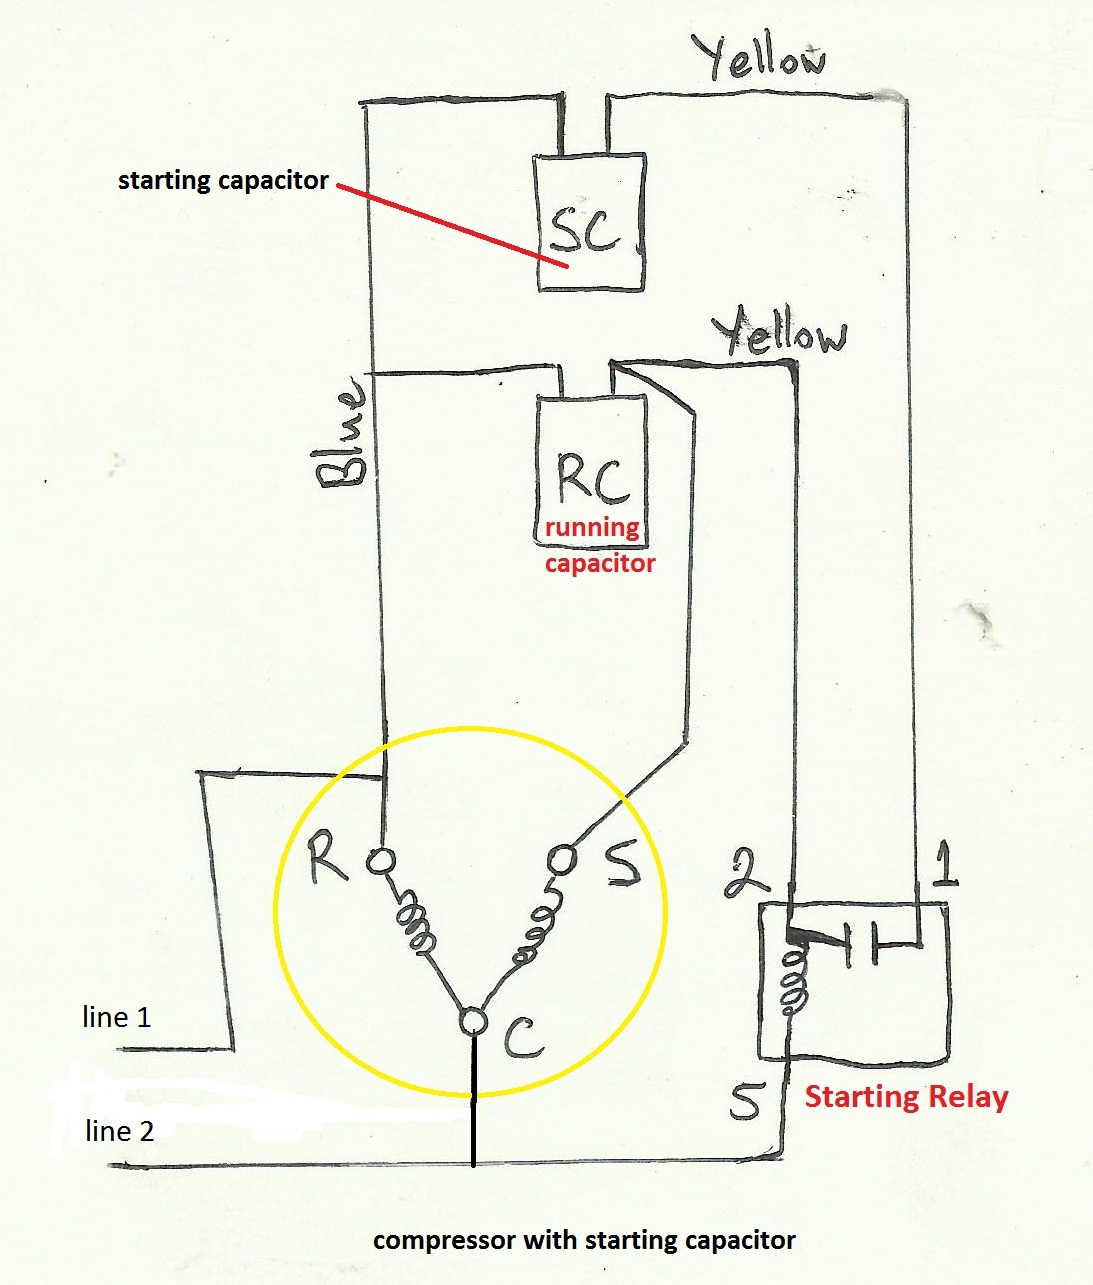 wiring diagram compressor refrigeration and air conditioning repair wiring diagram of wiring diagram of compressor starting capacitor